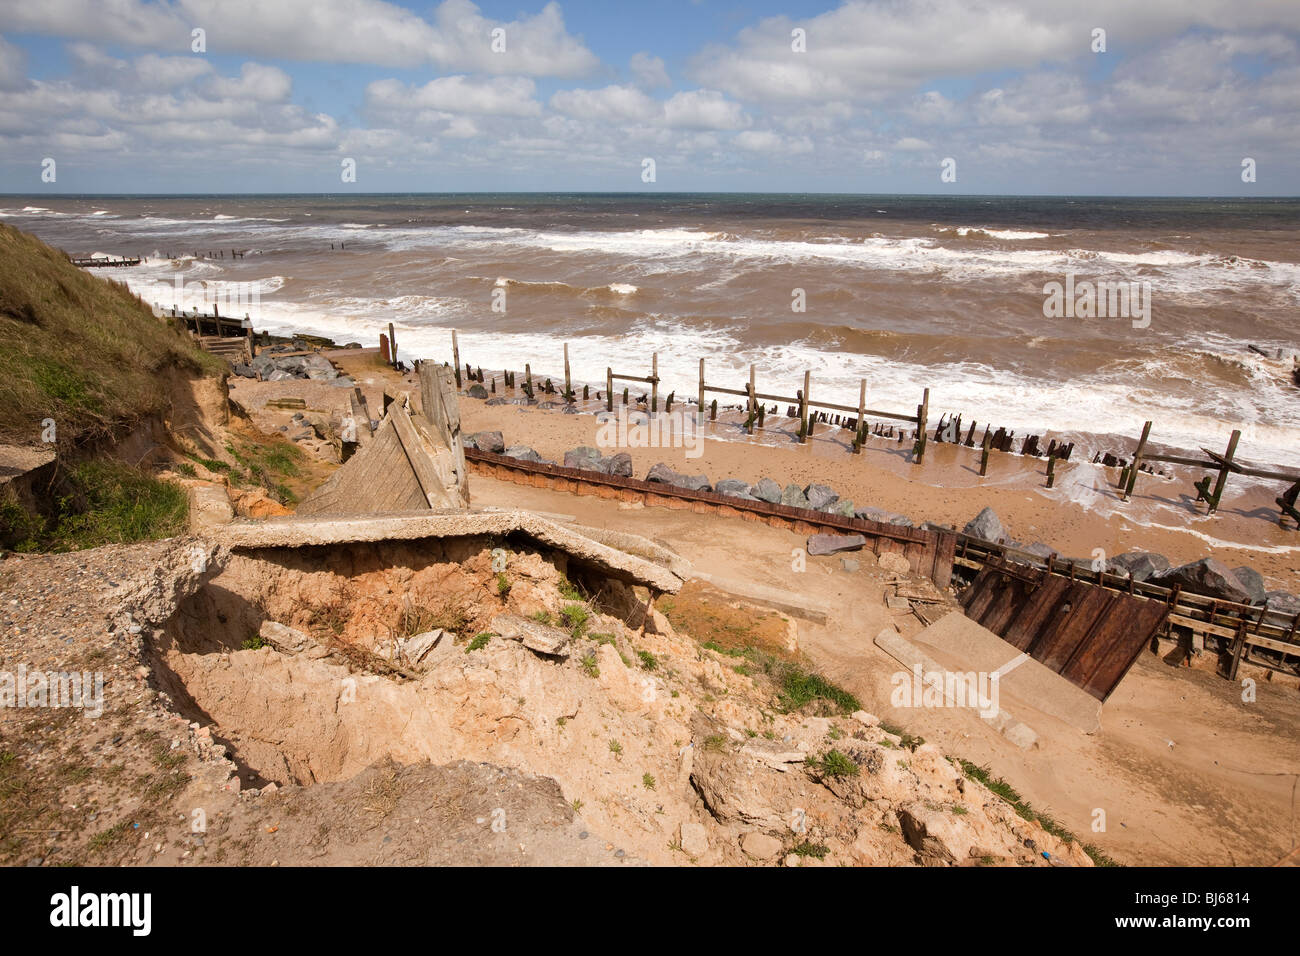 History of erosion and defences at Happisburgh.